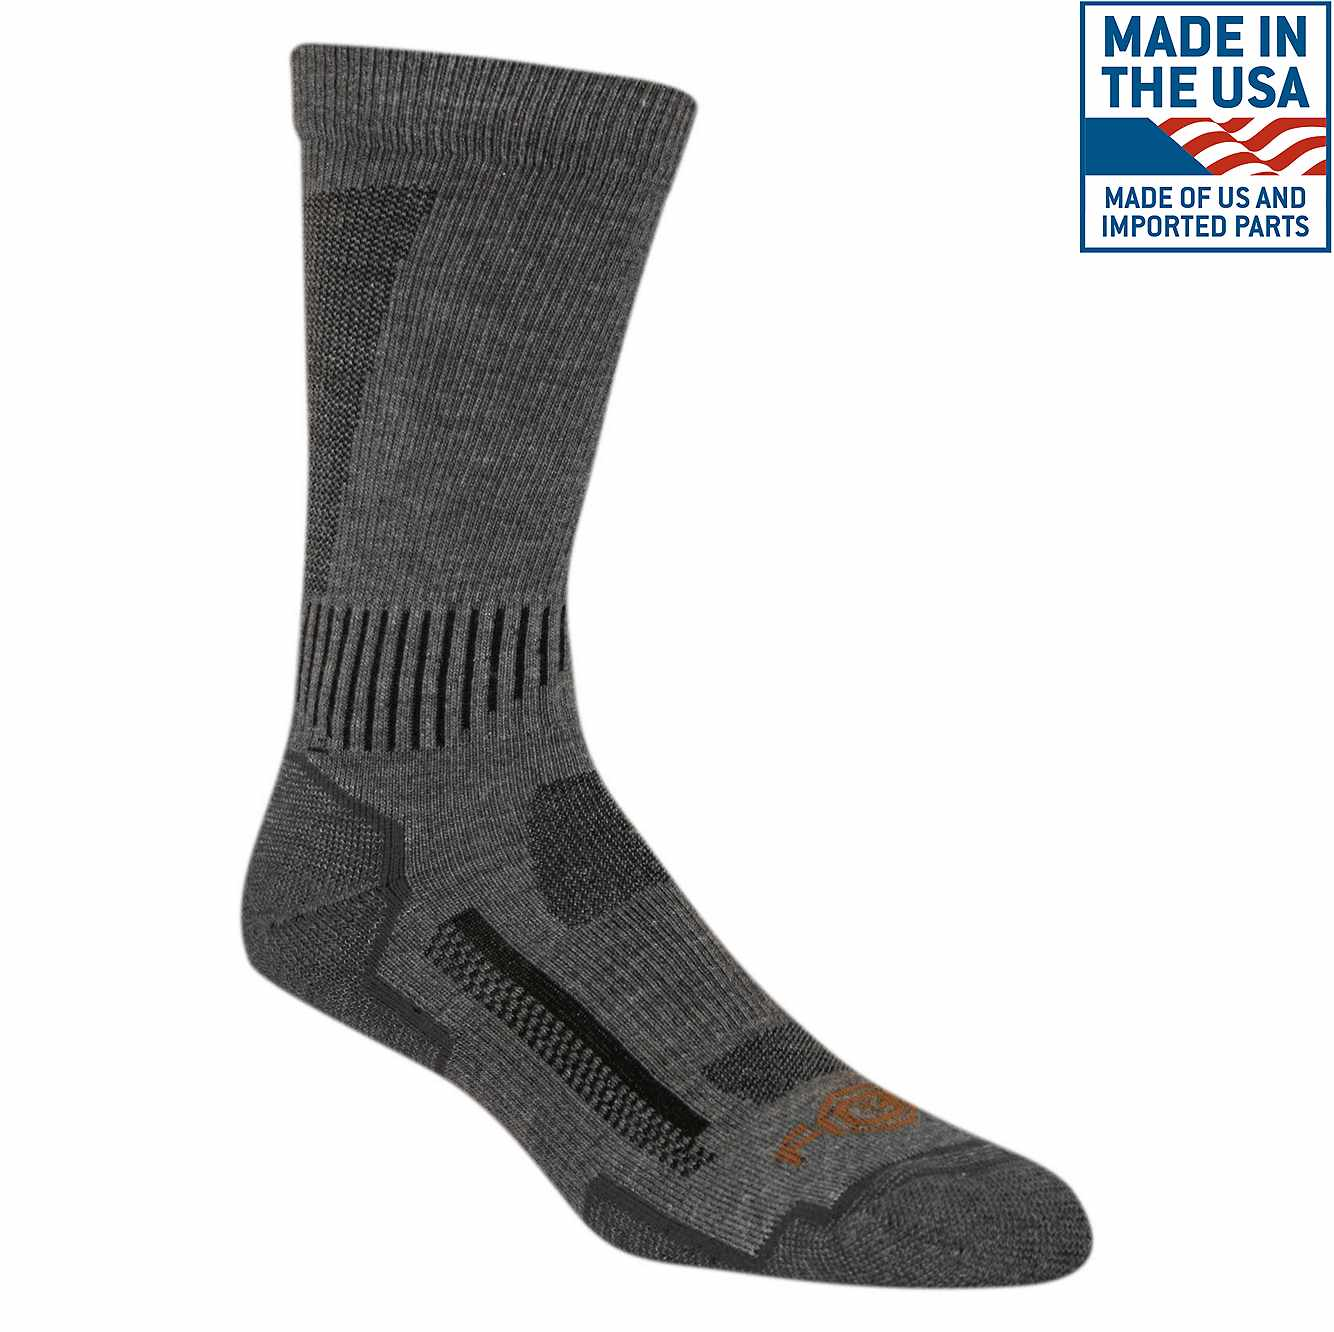 Picture of Carhartt Force® High-Performance Crew Sock in Charcoal Heather